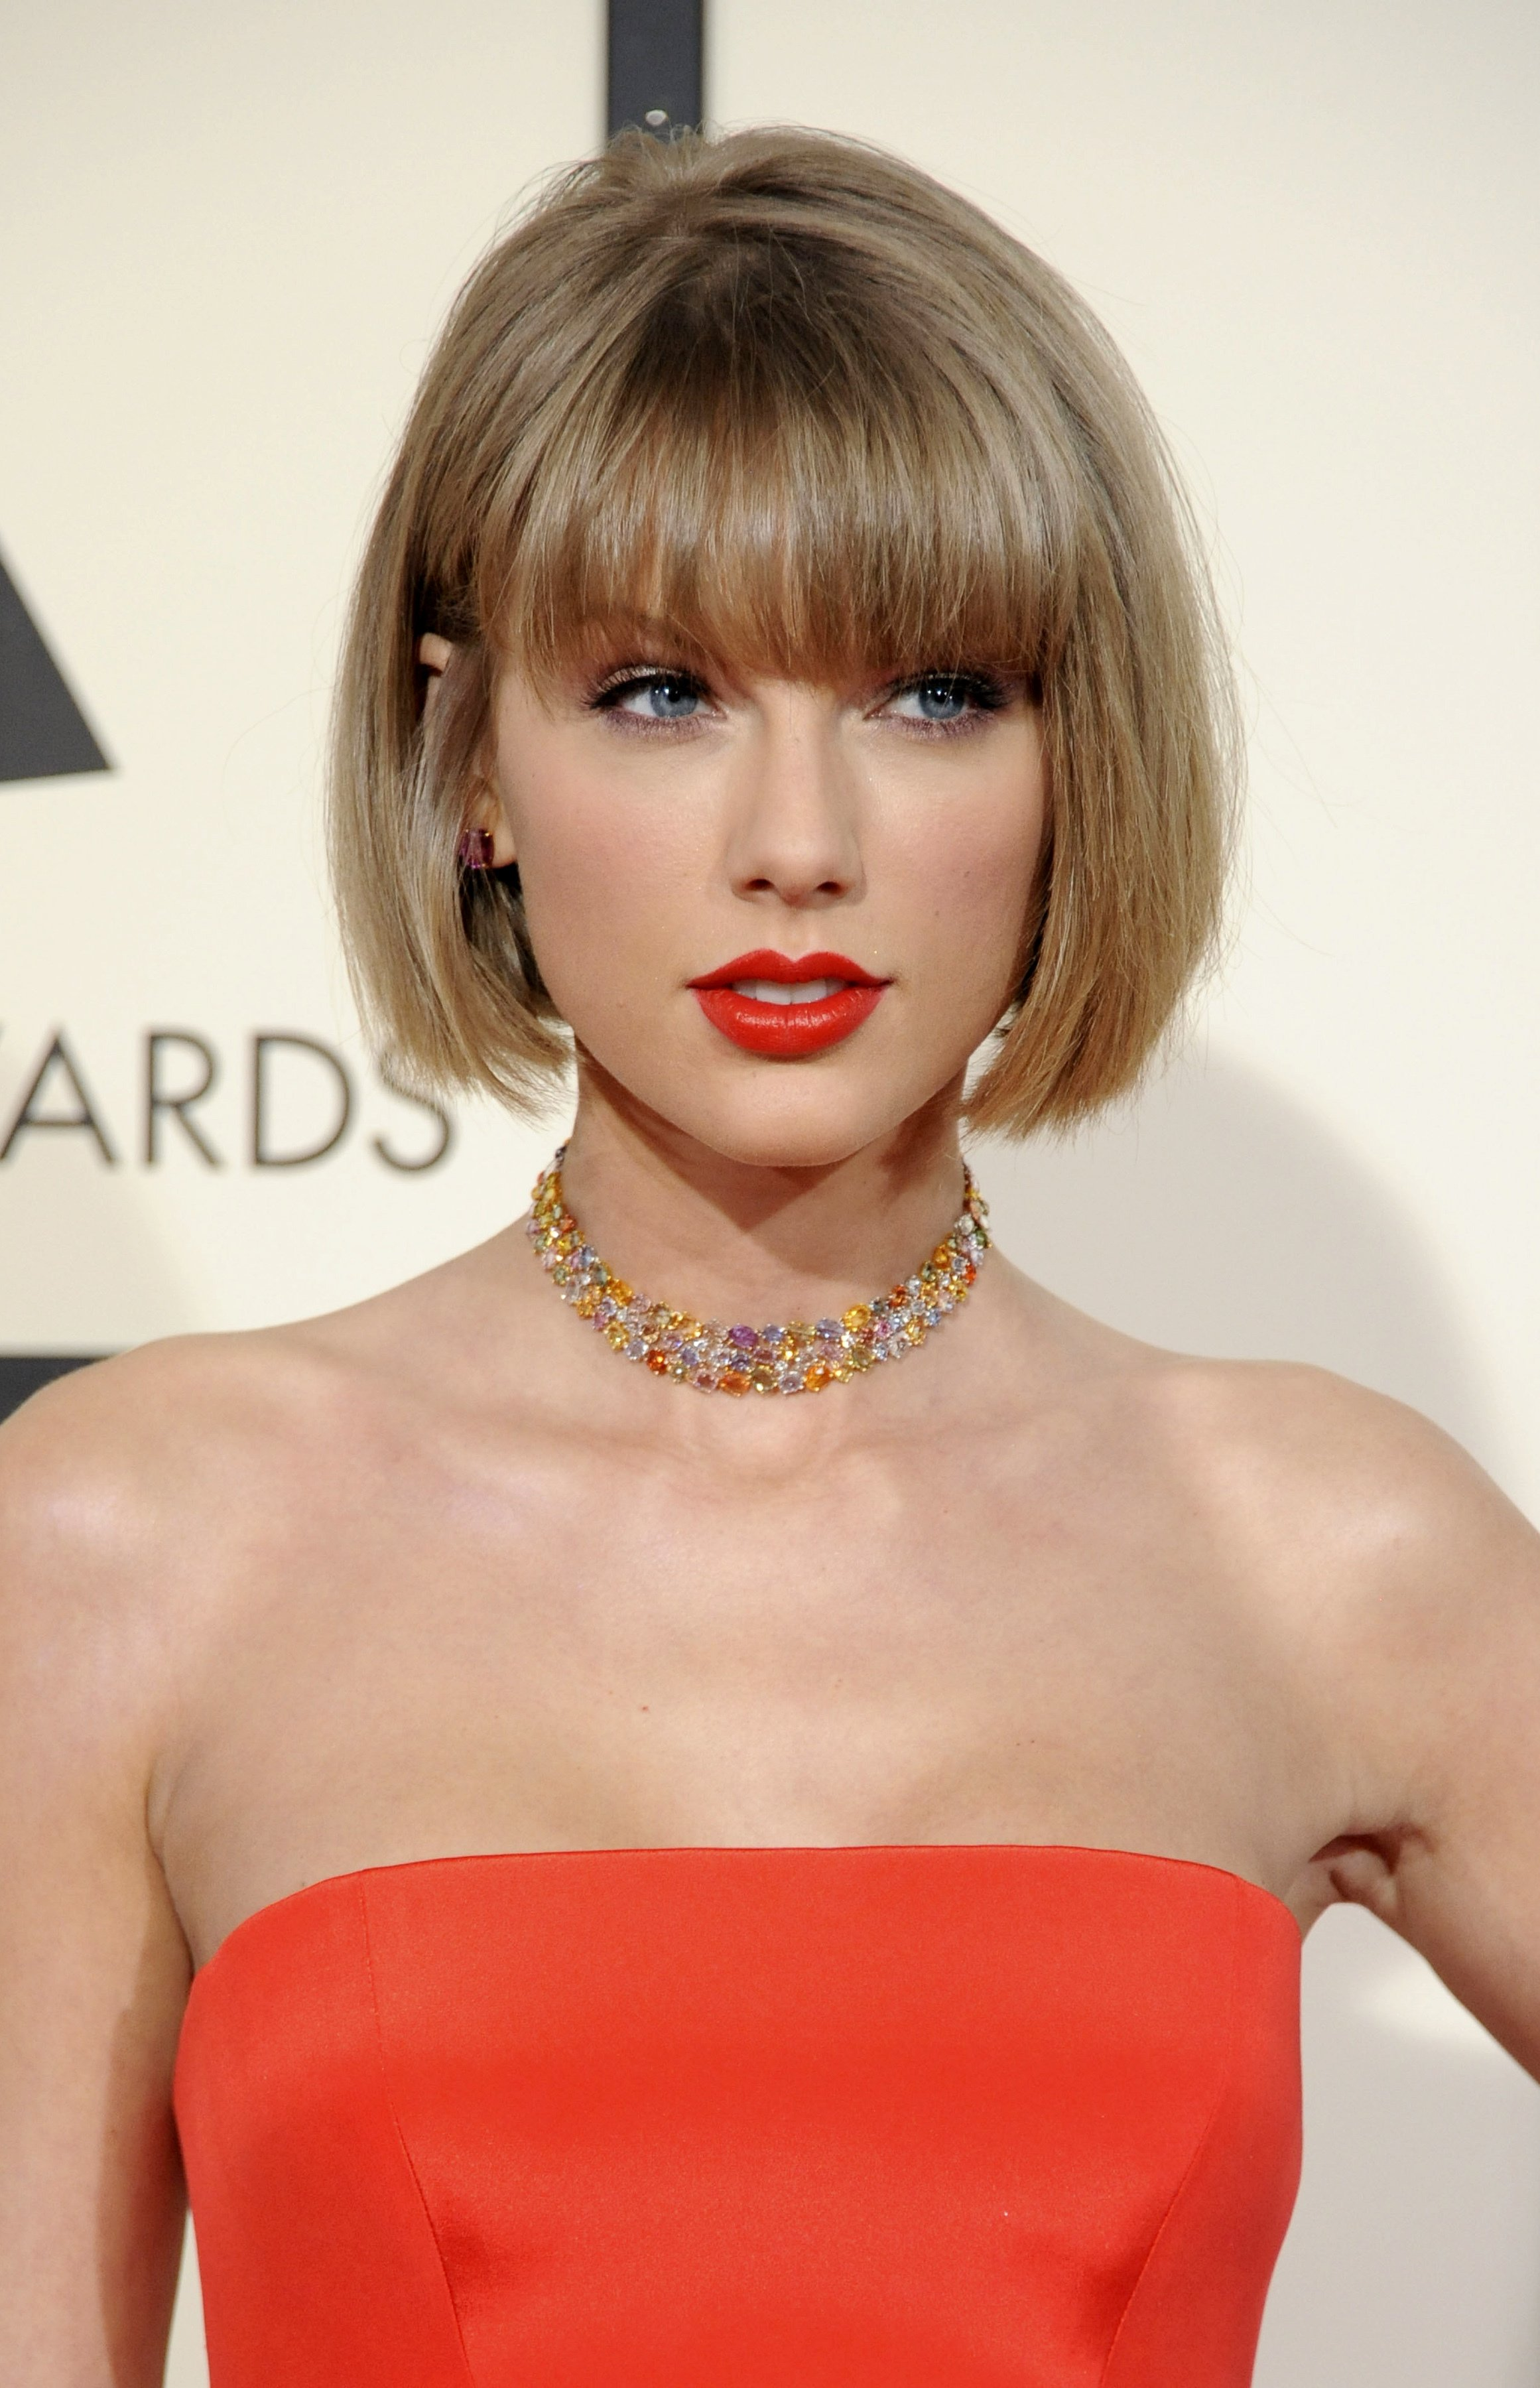 Image Source: Shutterstock/Taylor at a red carpet event